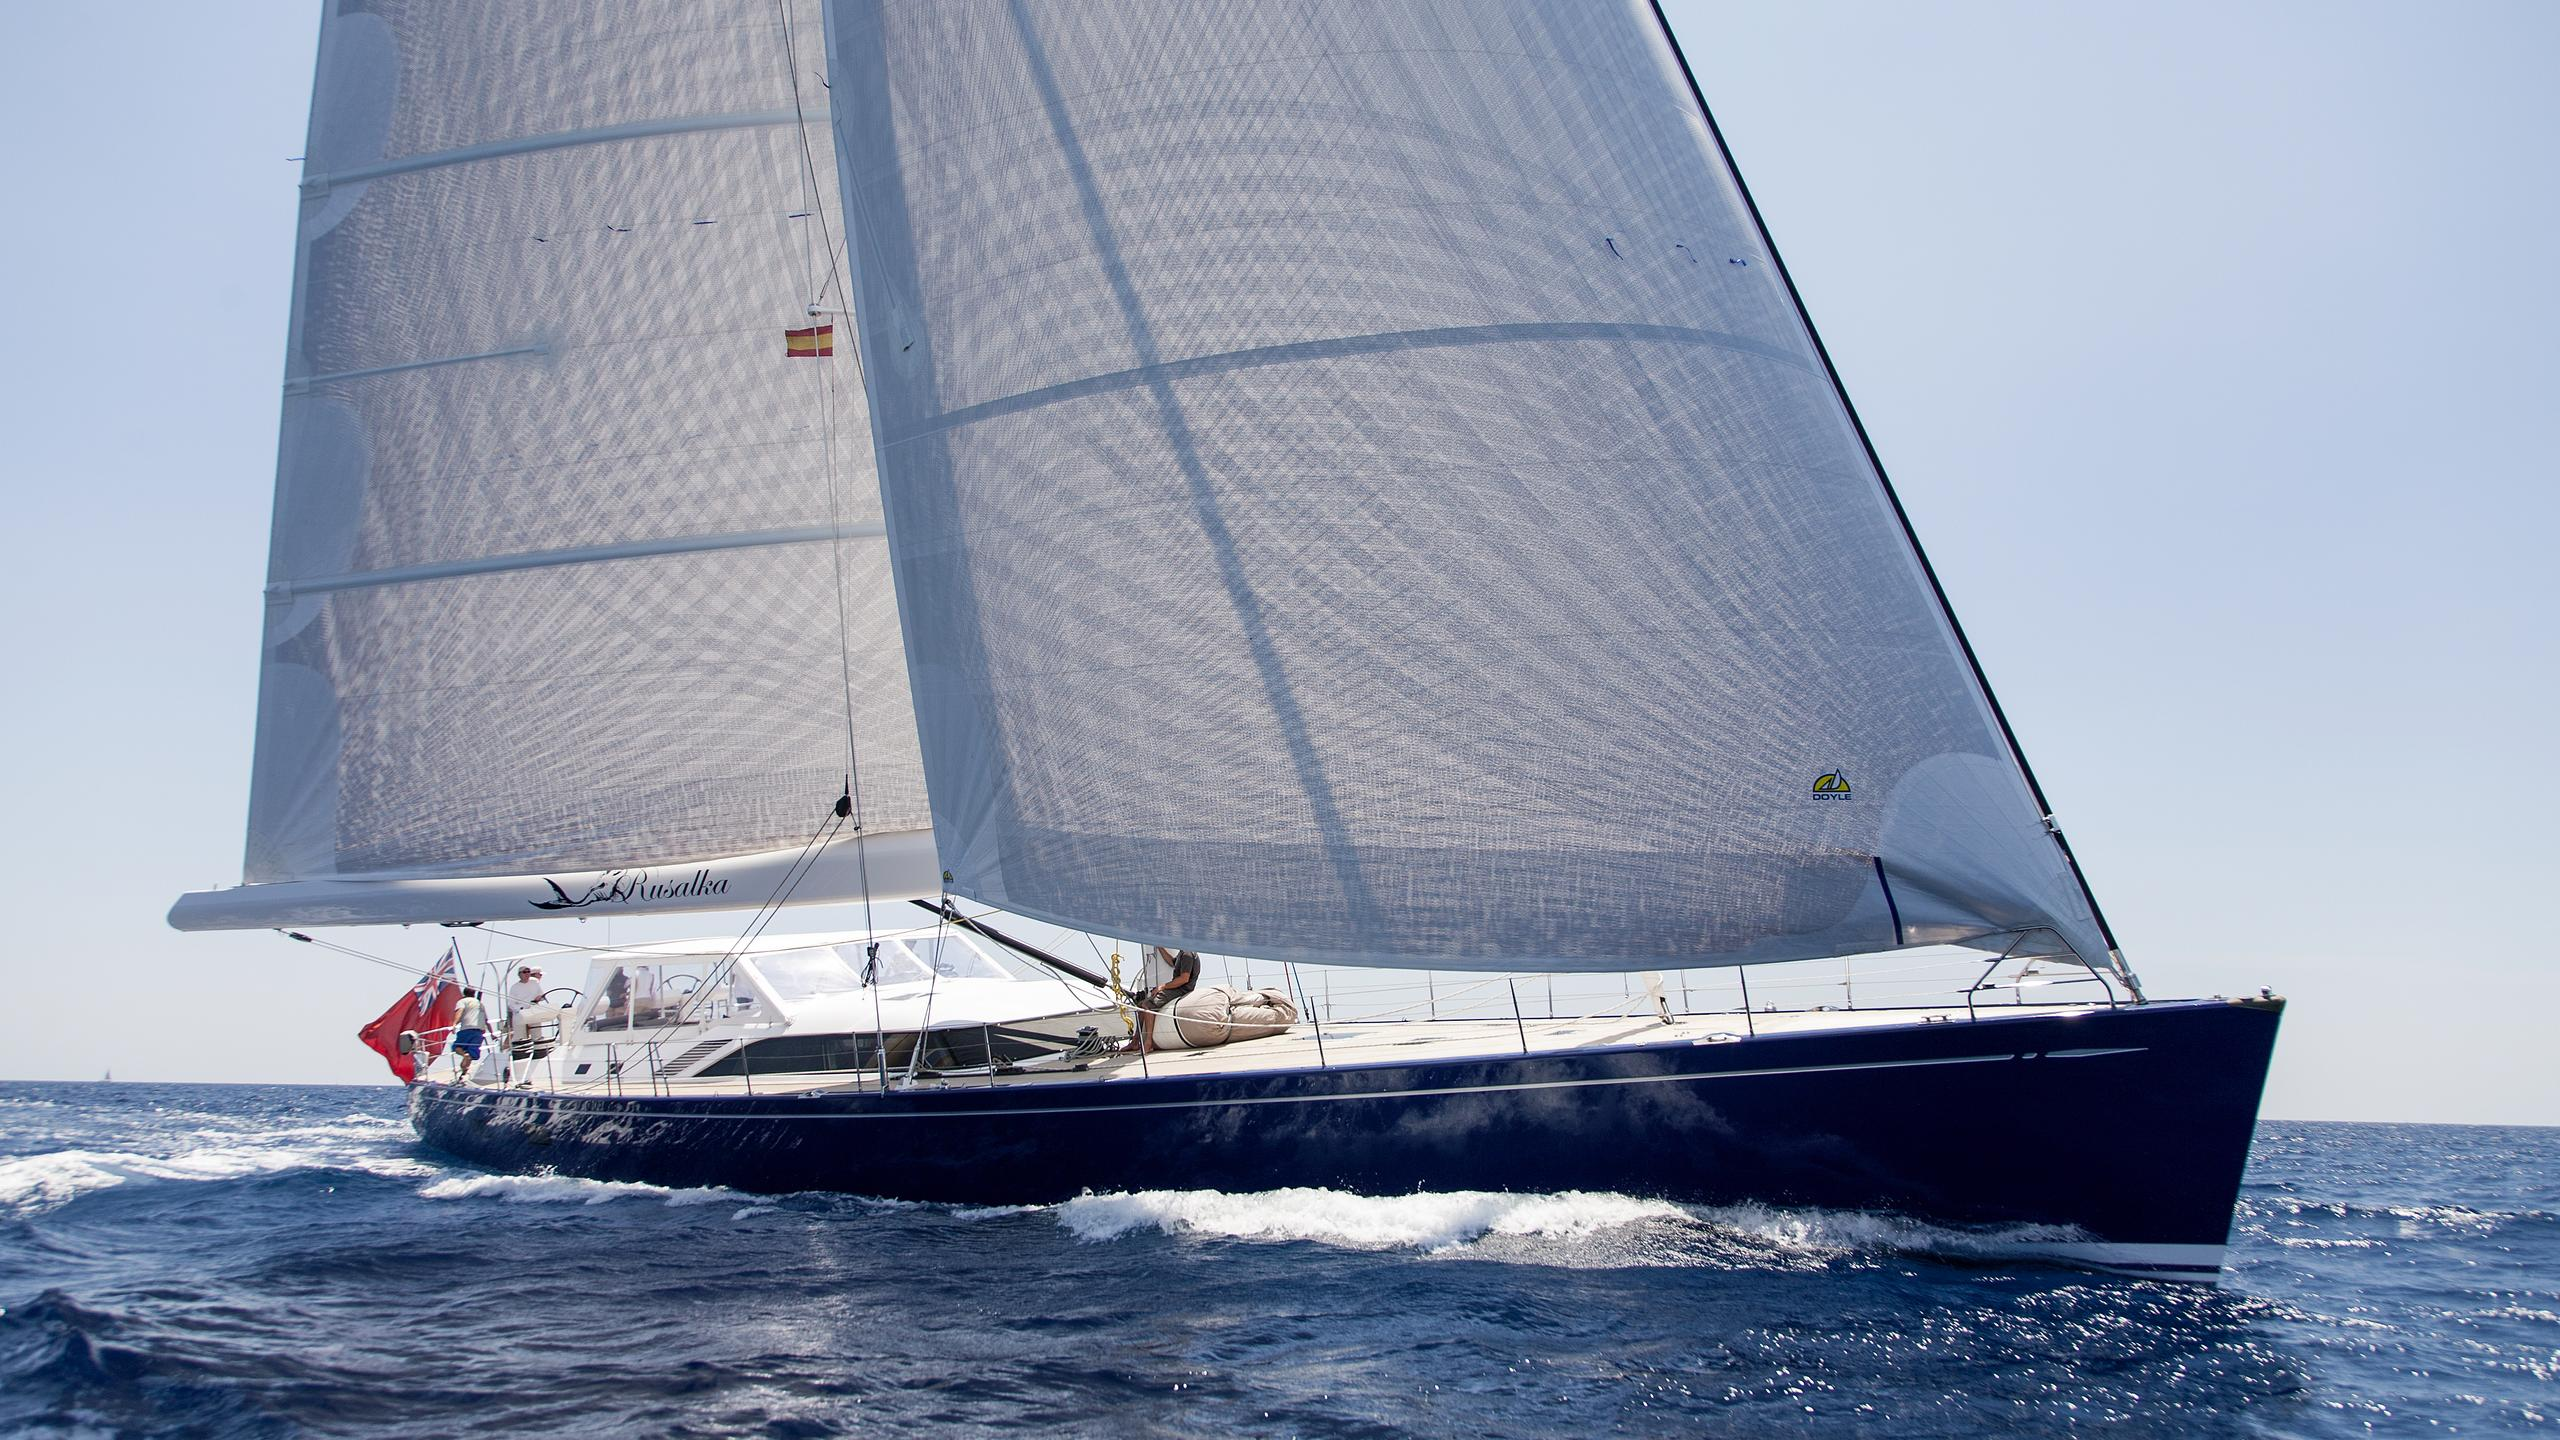 rusalka-yacht-for-sale-profile